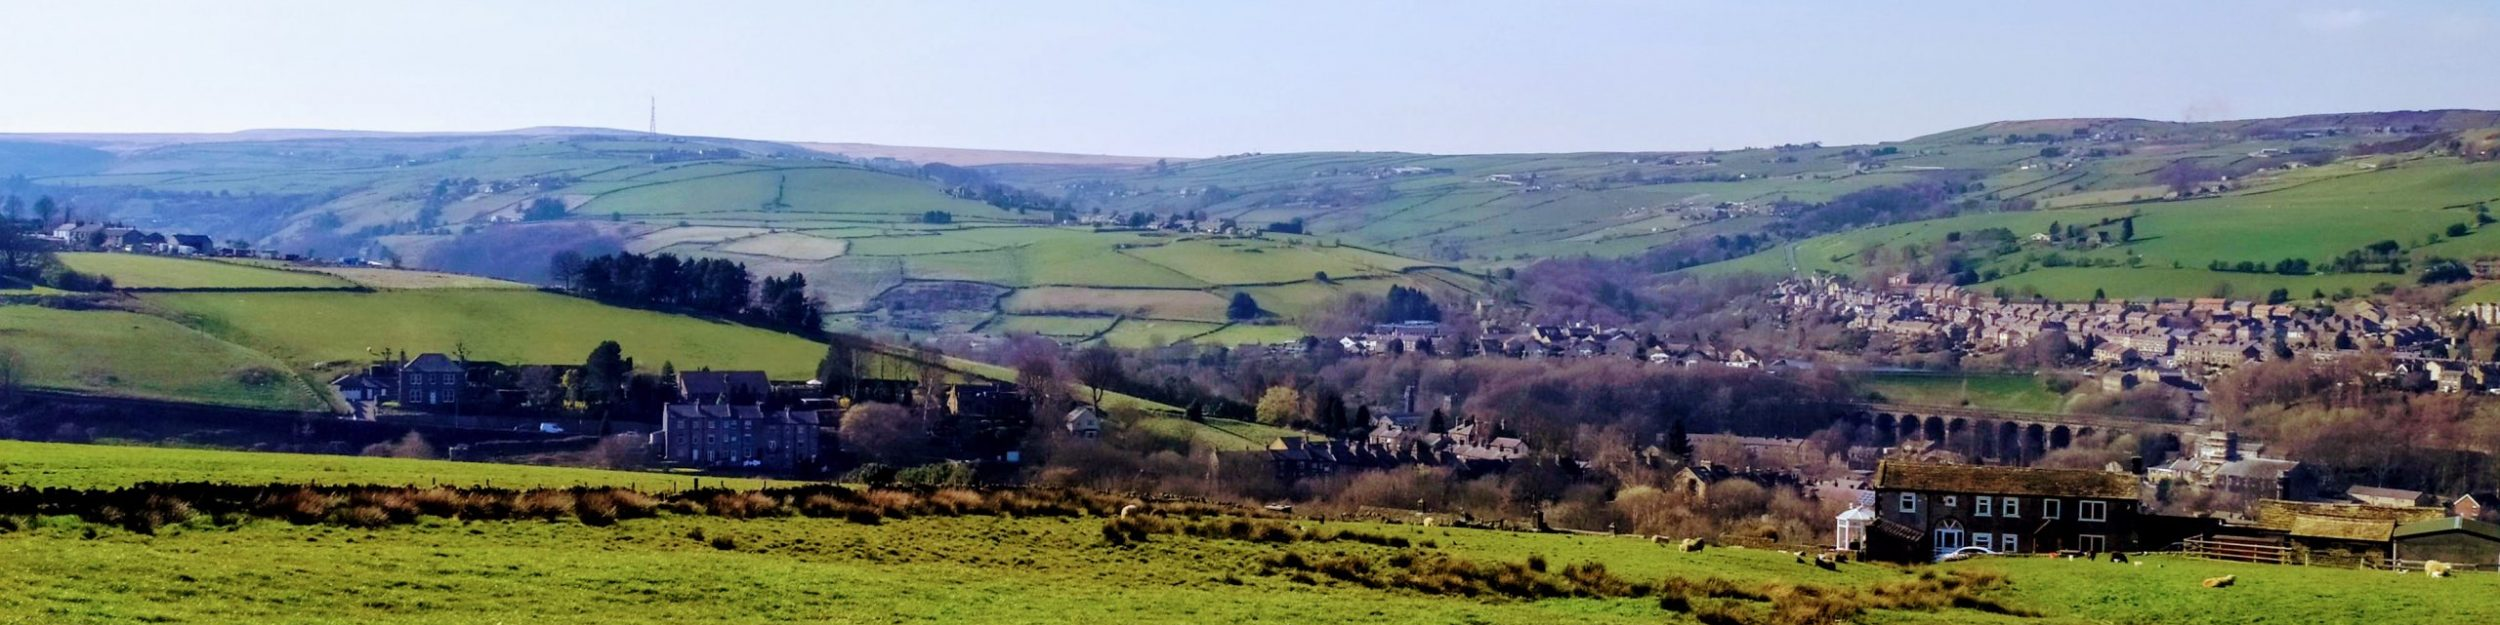 The Church of England in Marsden and Slaithwaite